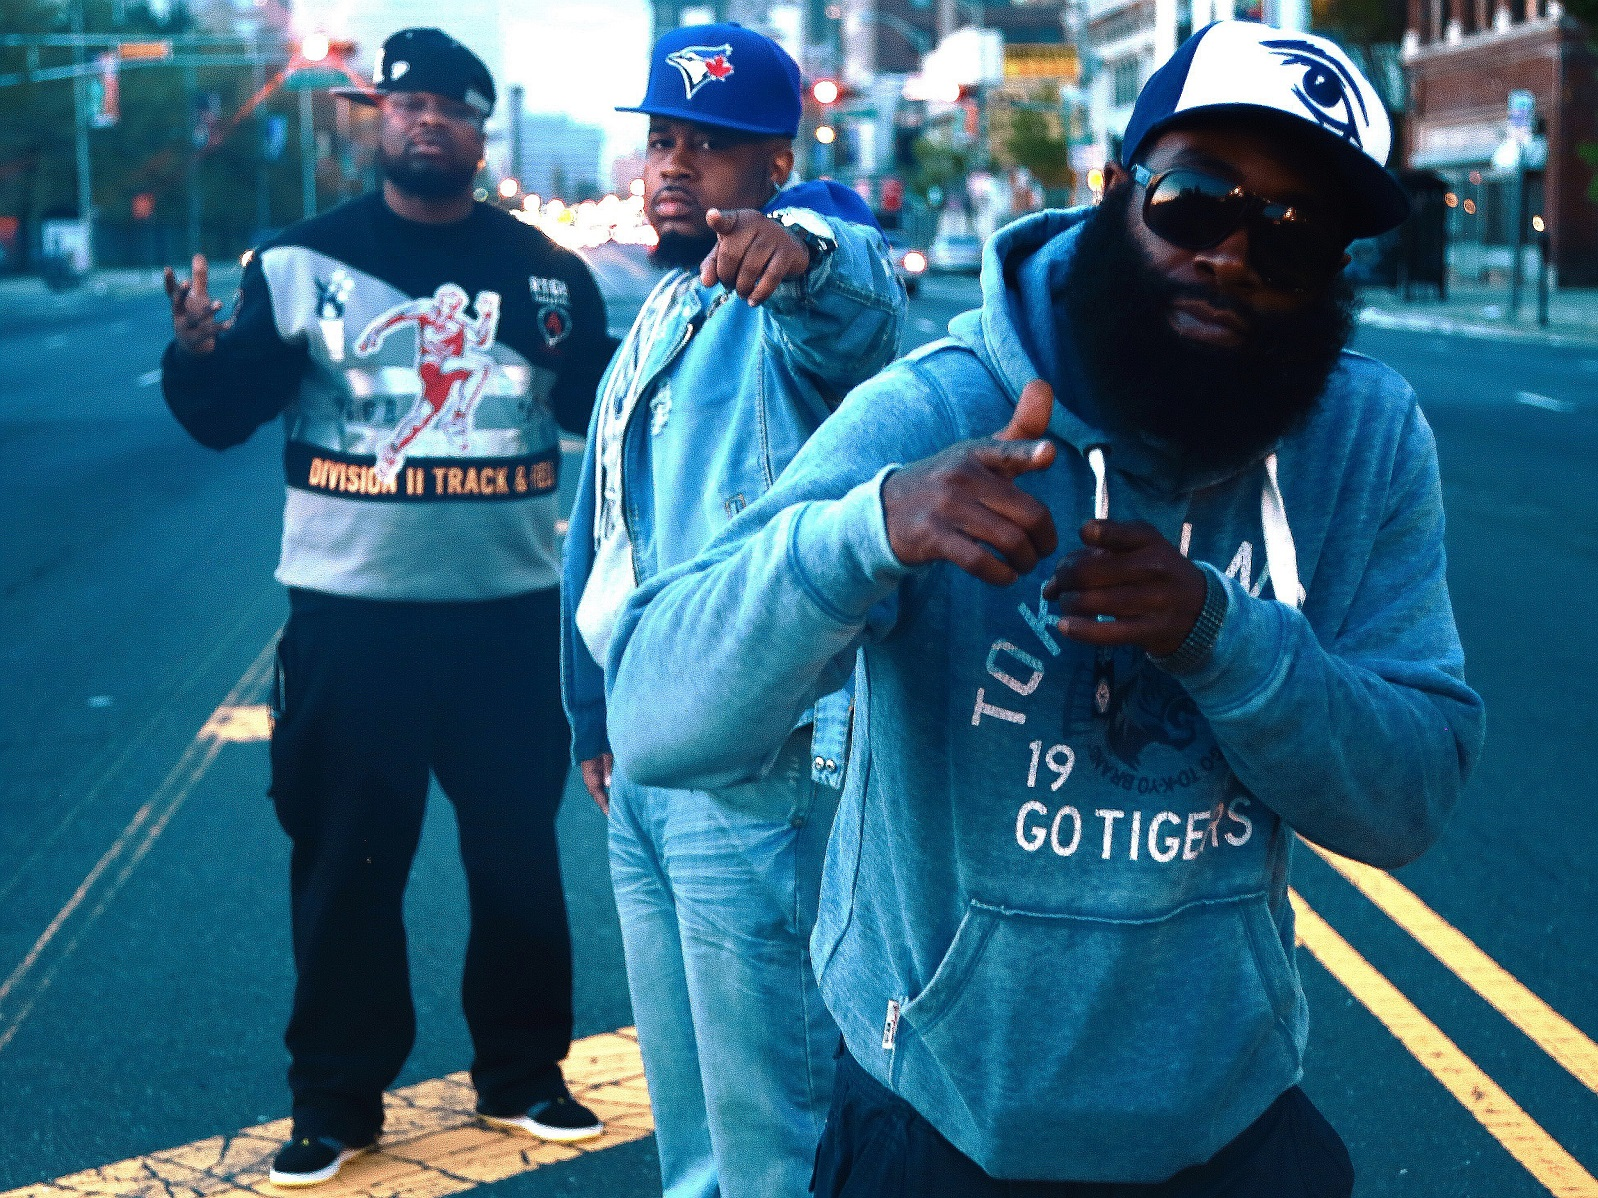 INTERVIEW: Zero to 50 Real Fast with Jersey's the 050 Boyz